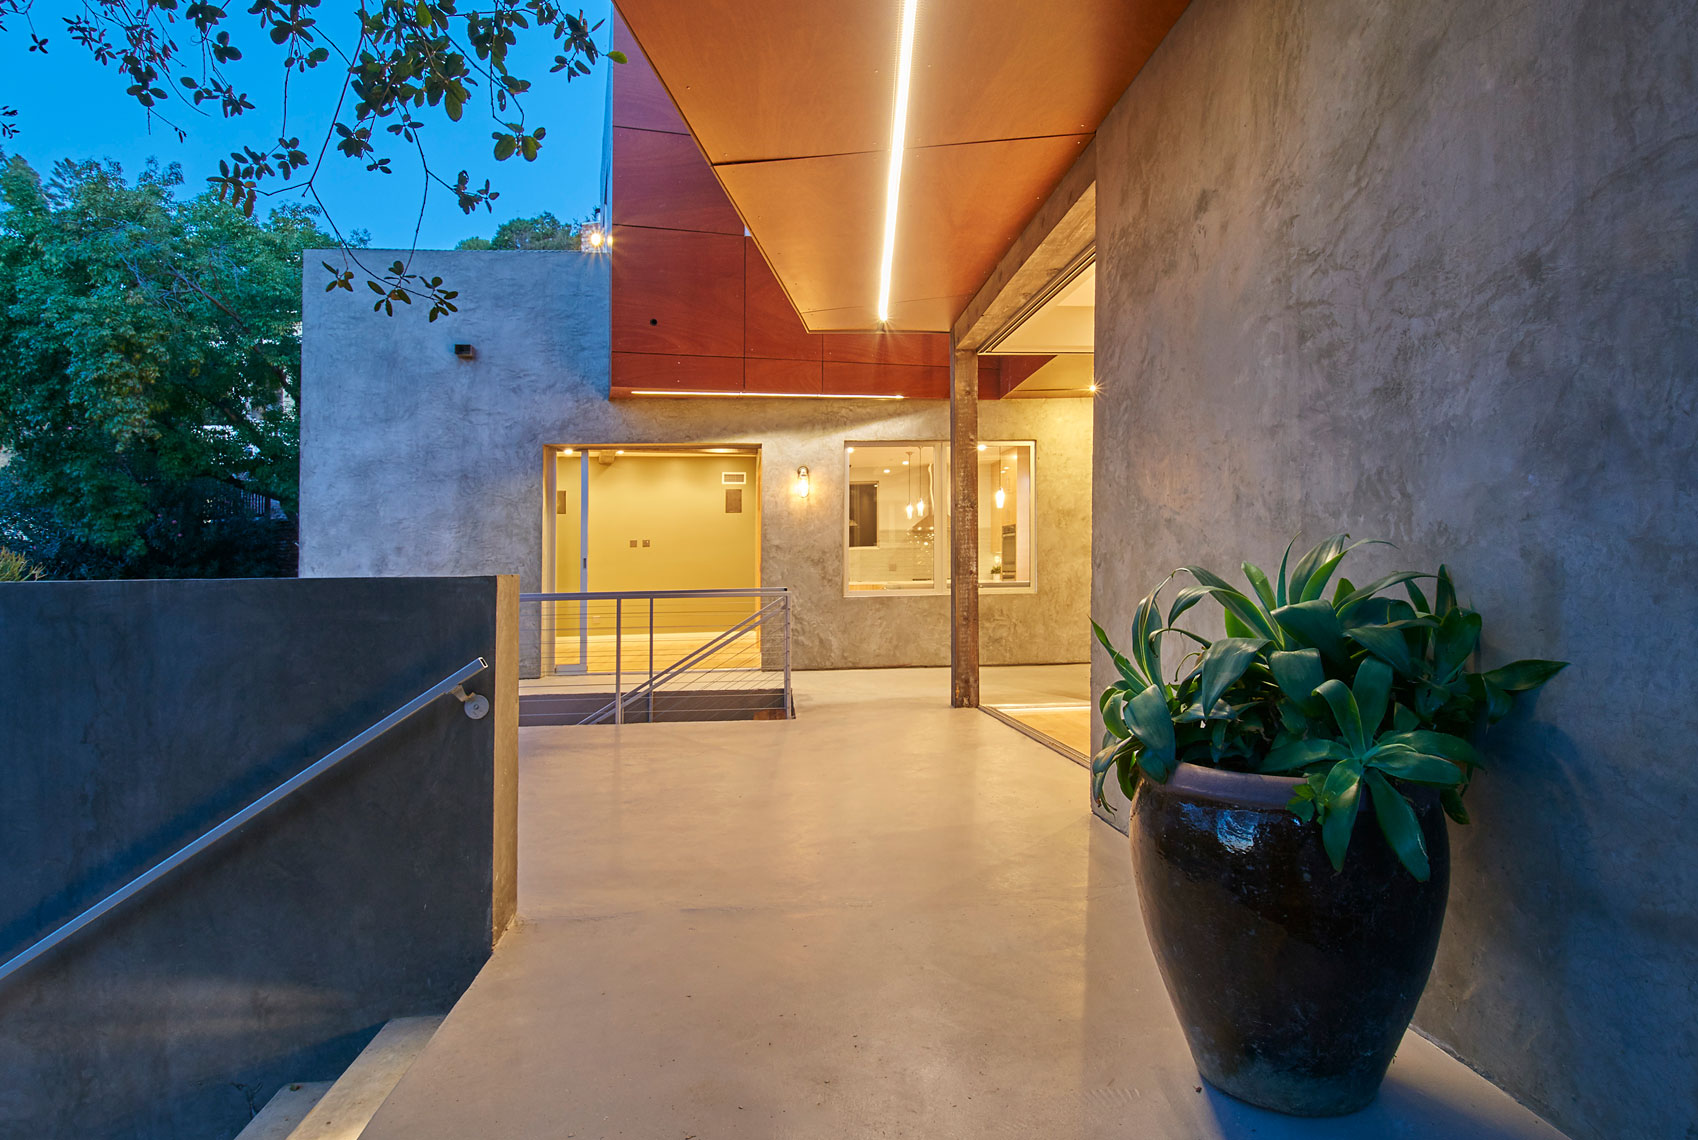 Architectural-photography-of-exterior-view-of-entry-courtyard-of-contemporary-home-Joe-Atlas-architectural-photographer-Los-Angeles.